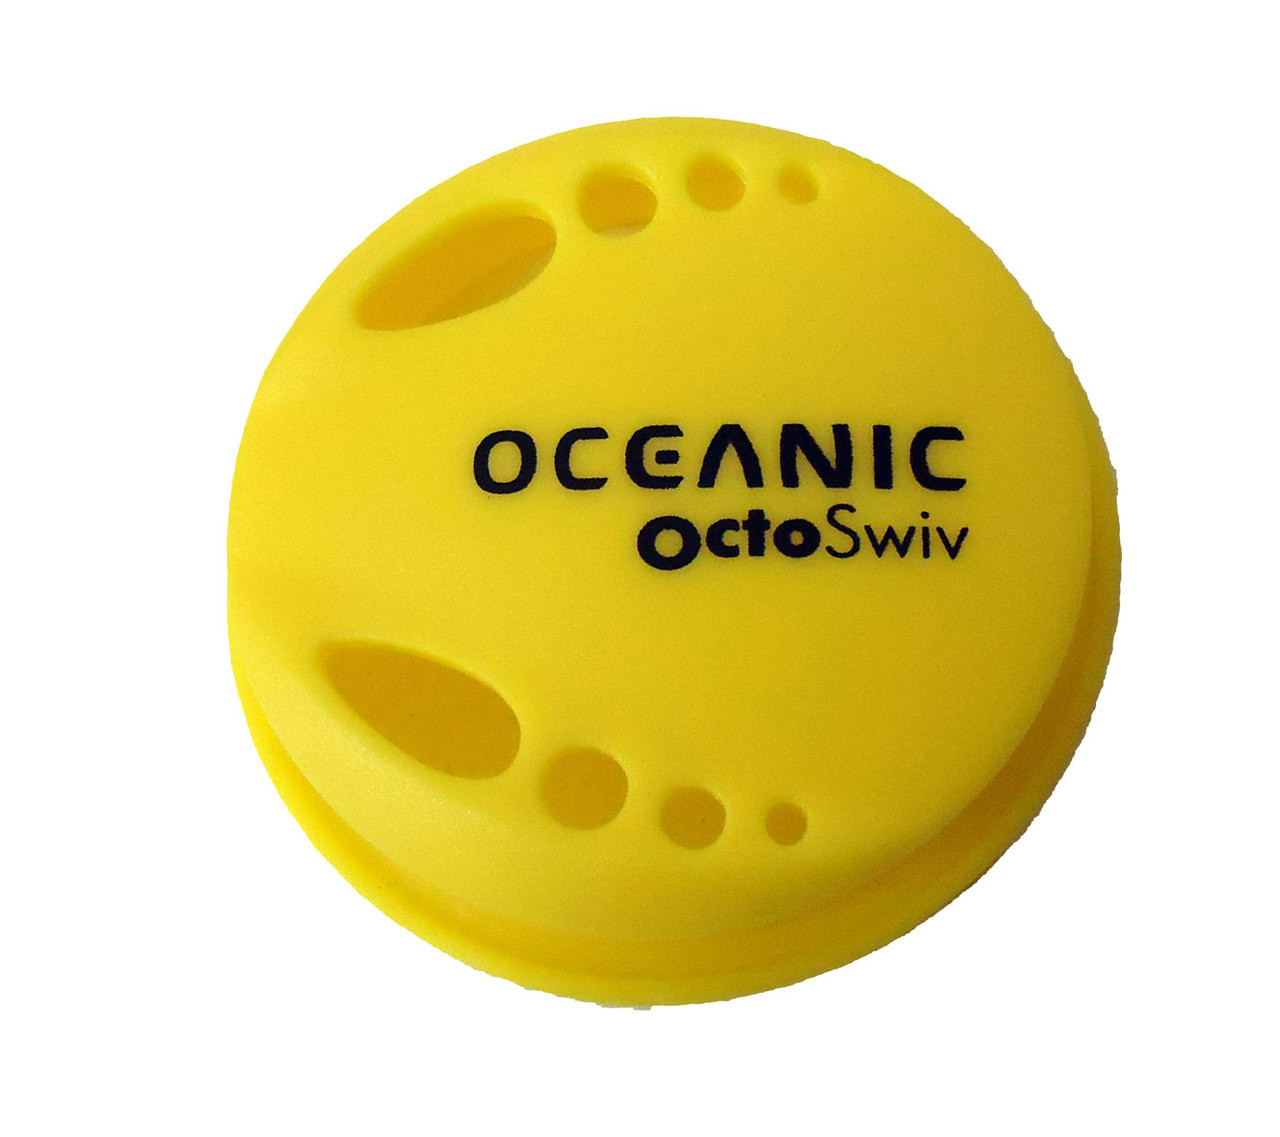 Diaphragm Cover Scuba Diving Second Stage Oceanic Slimline Octo 6906.53